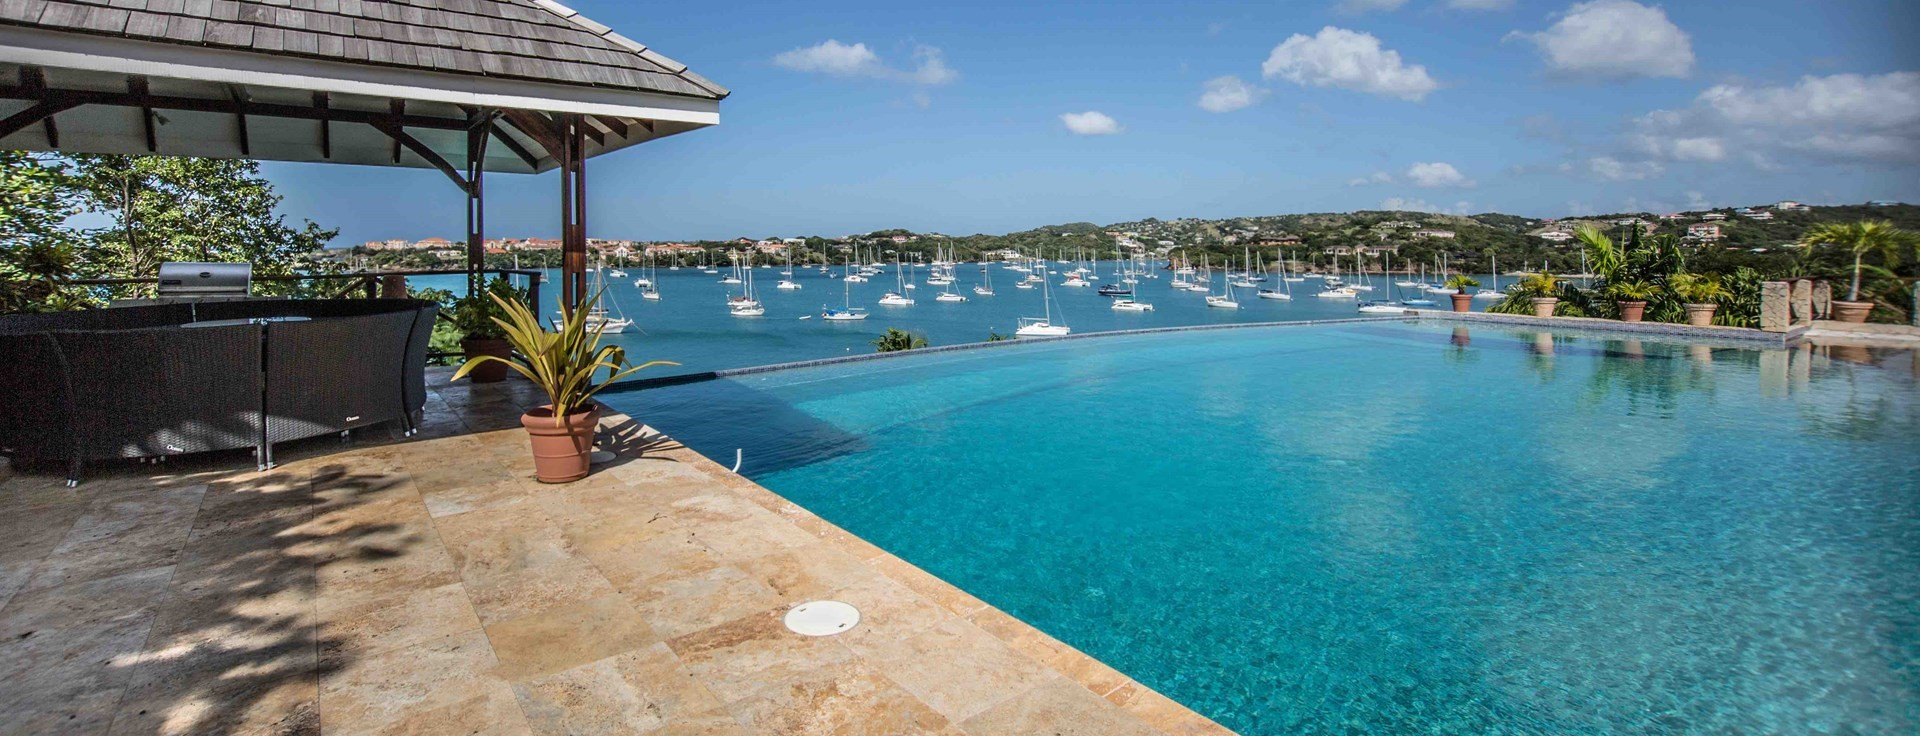 9-bedroom-estate-house-grenada-pool